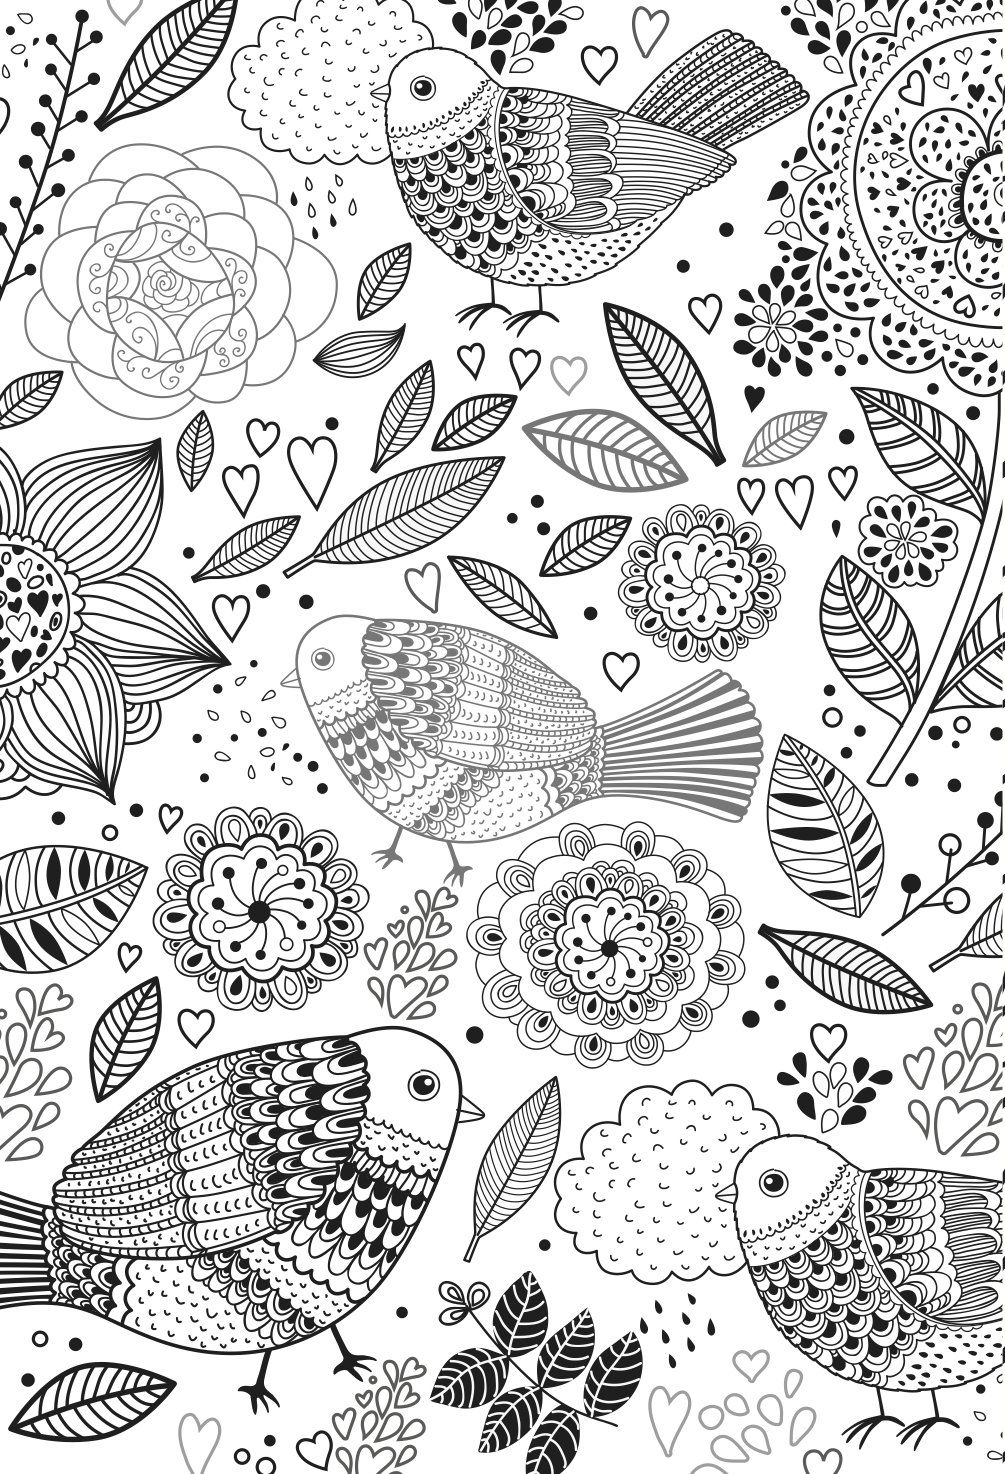 Amazon Fr The One And Only Colouring Book For Adults Livres Bird Coloring Pages Colouring Pages Coloring Books